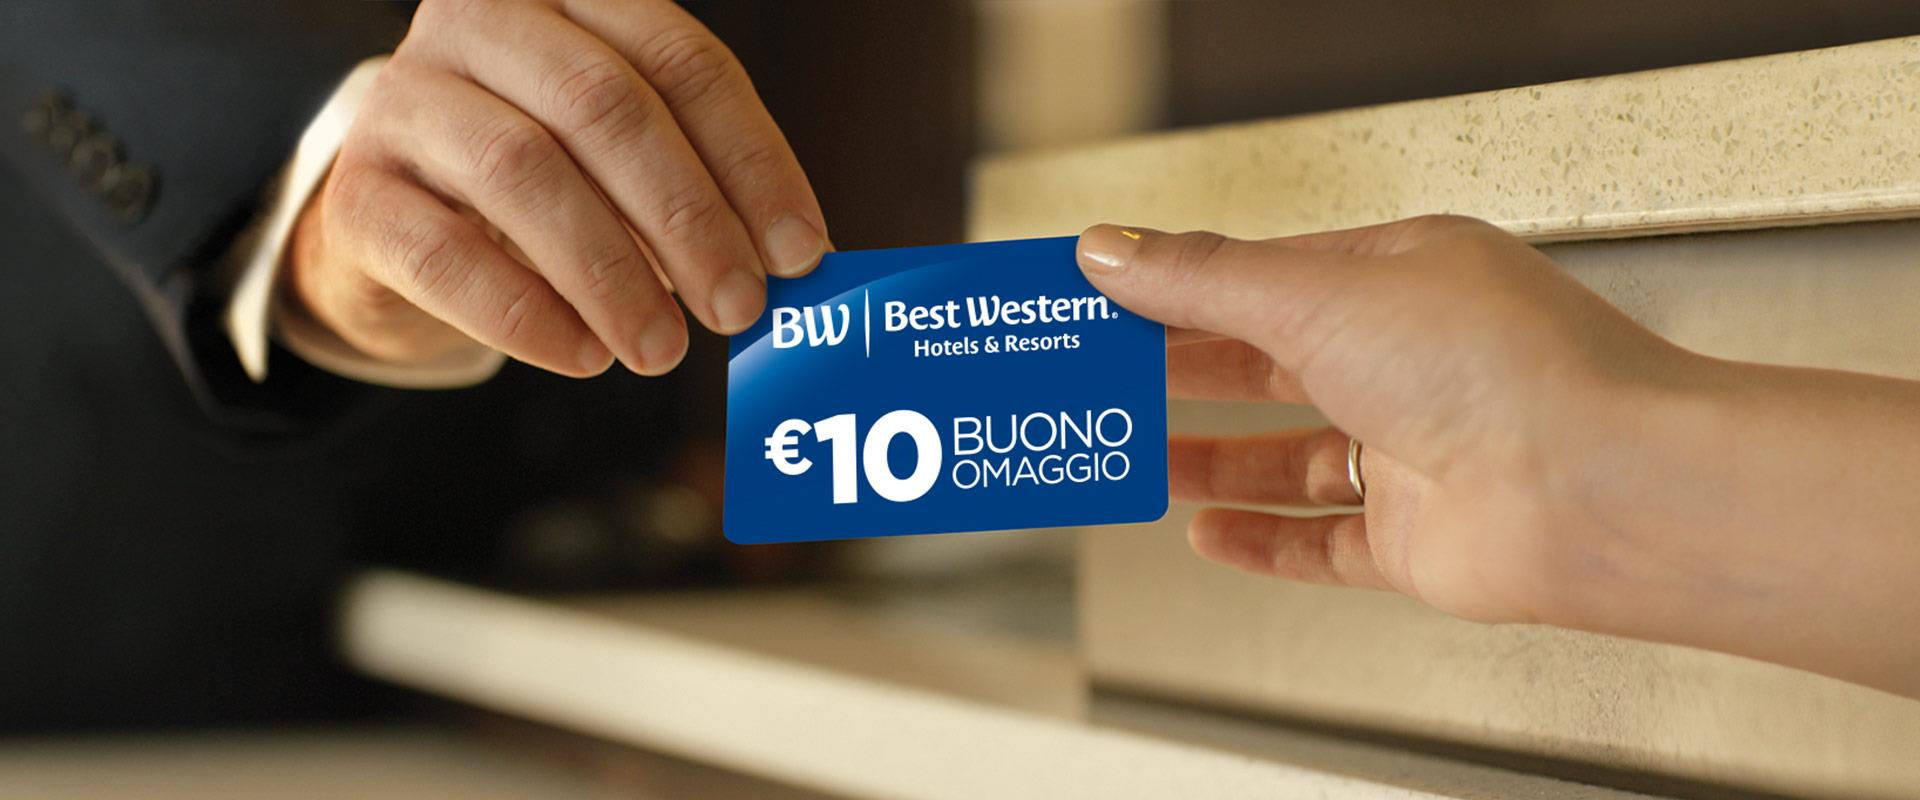 Winter Promotion BW Rewards ®-Genova